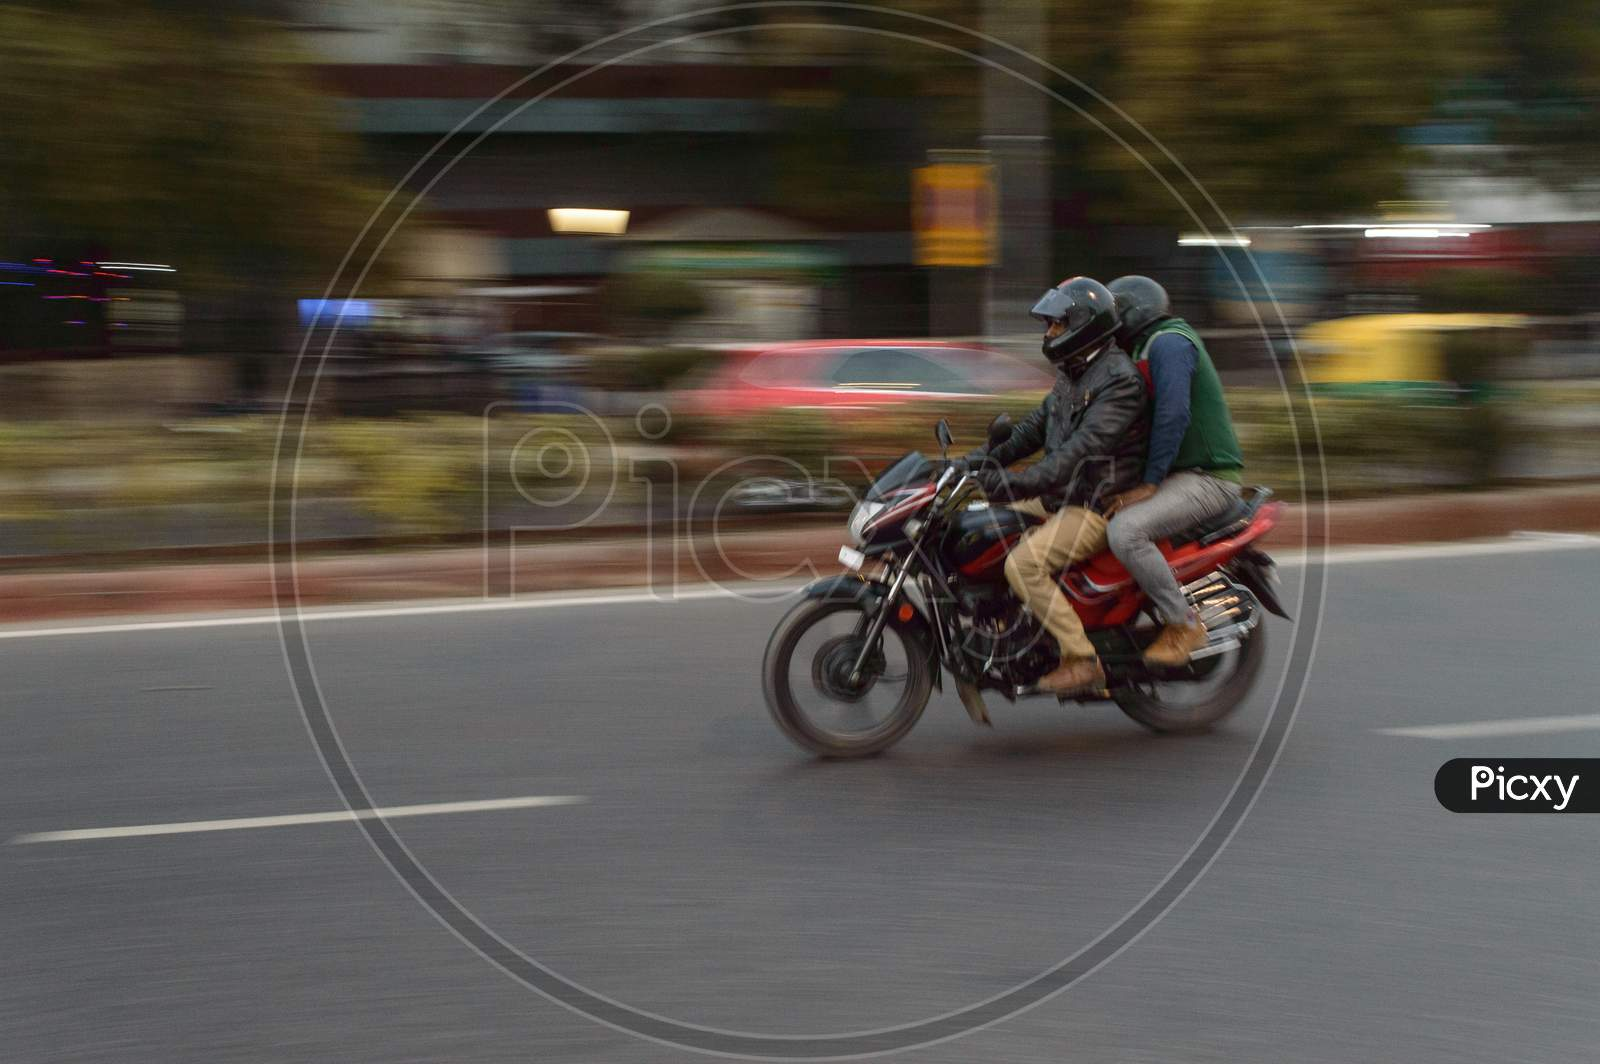 Panning Technique Of Red And Black Bike Going Somewhere At Evening On The Road